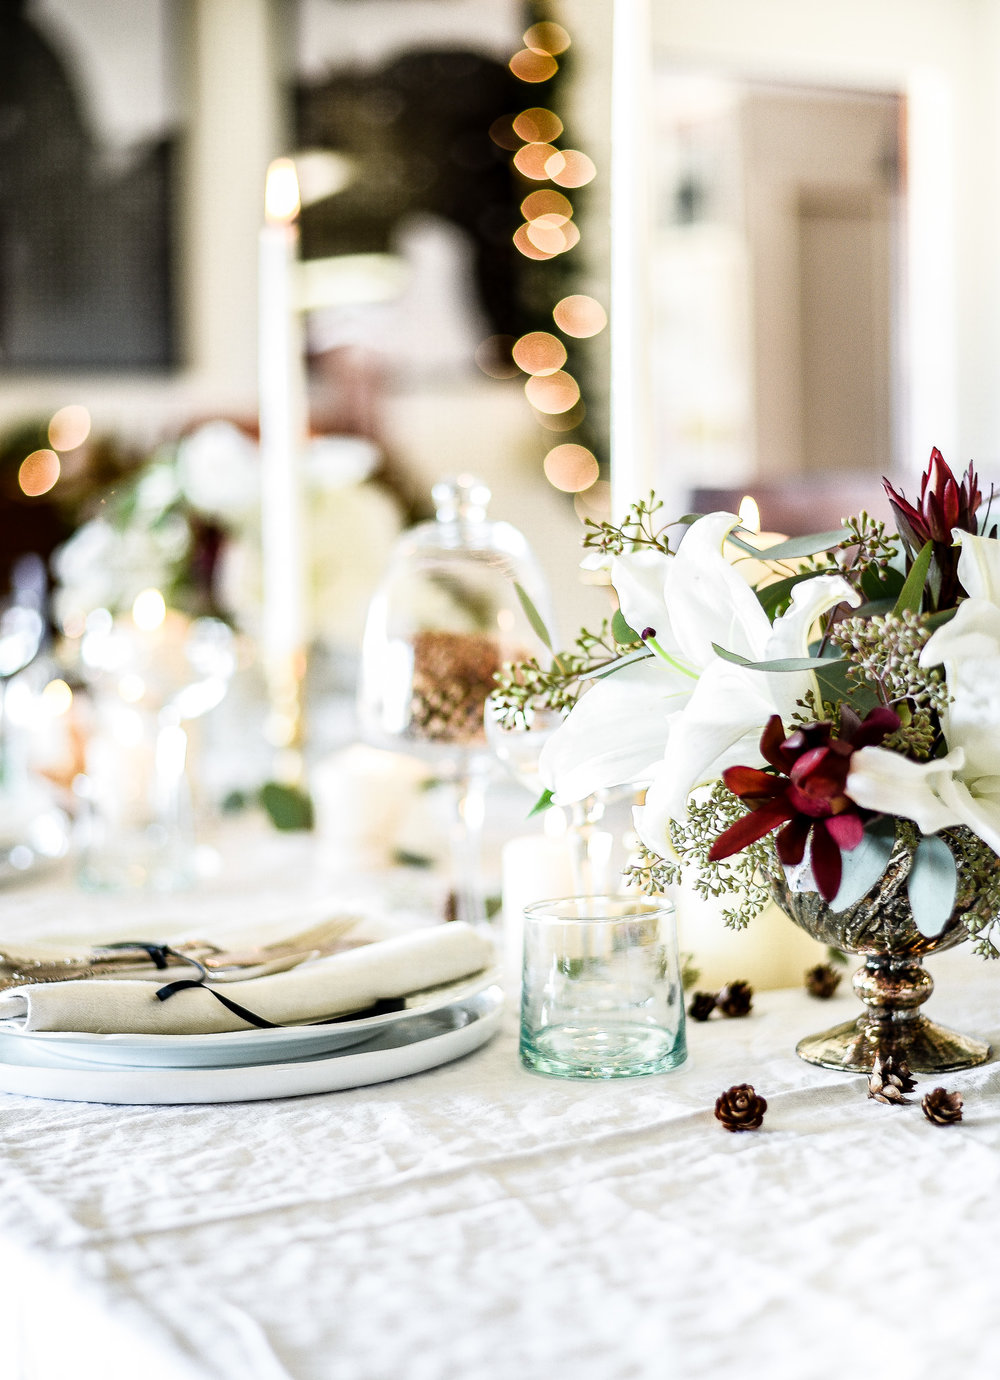 White holiday tablescape with greenery and vintage linens | boxwoodavenue.com